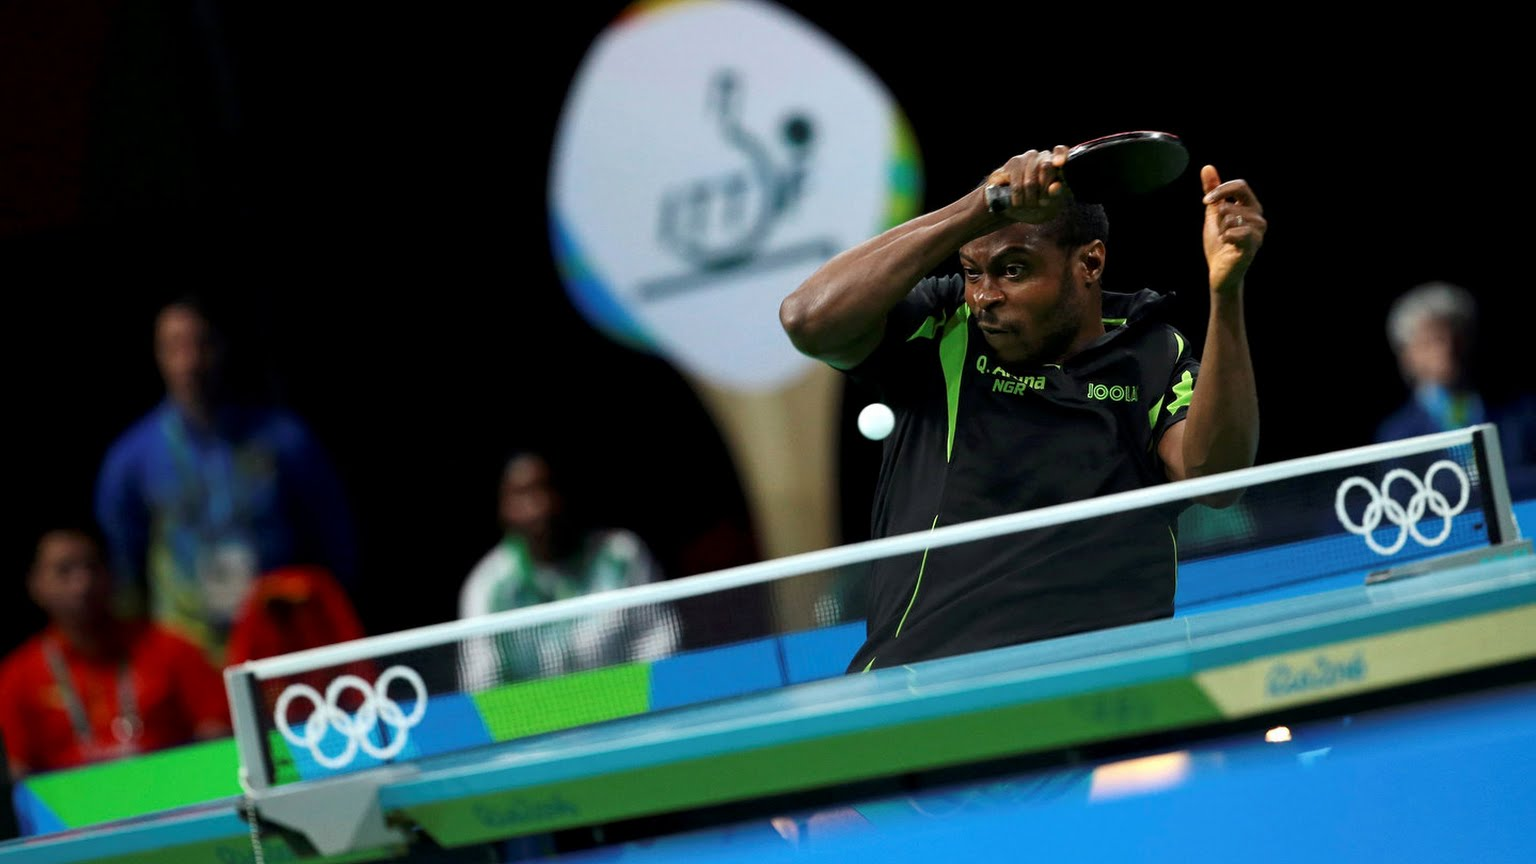 Aruna Quadri returning a serve in one of his epic matches at the Rio 2016 Olympic Games. Photo Credit: OlympicGamesRio2016